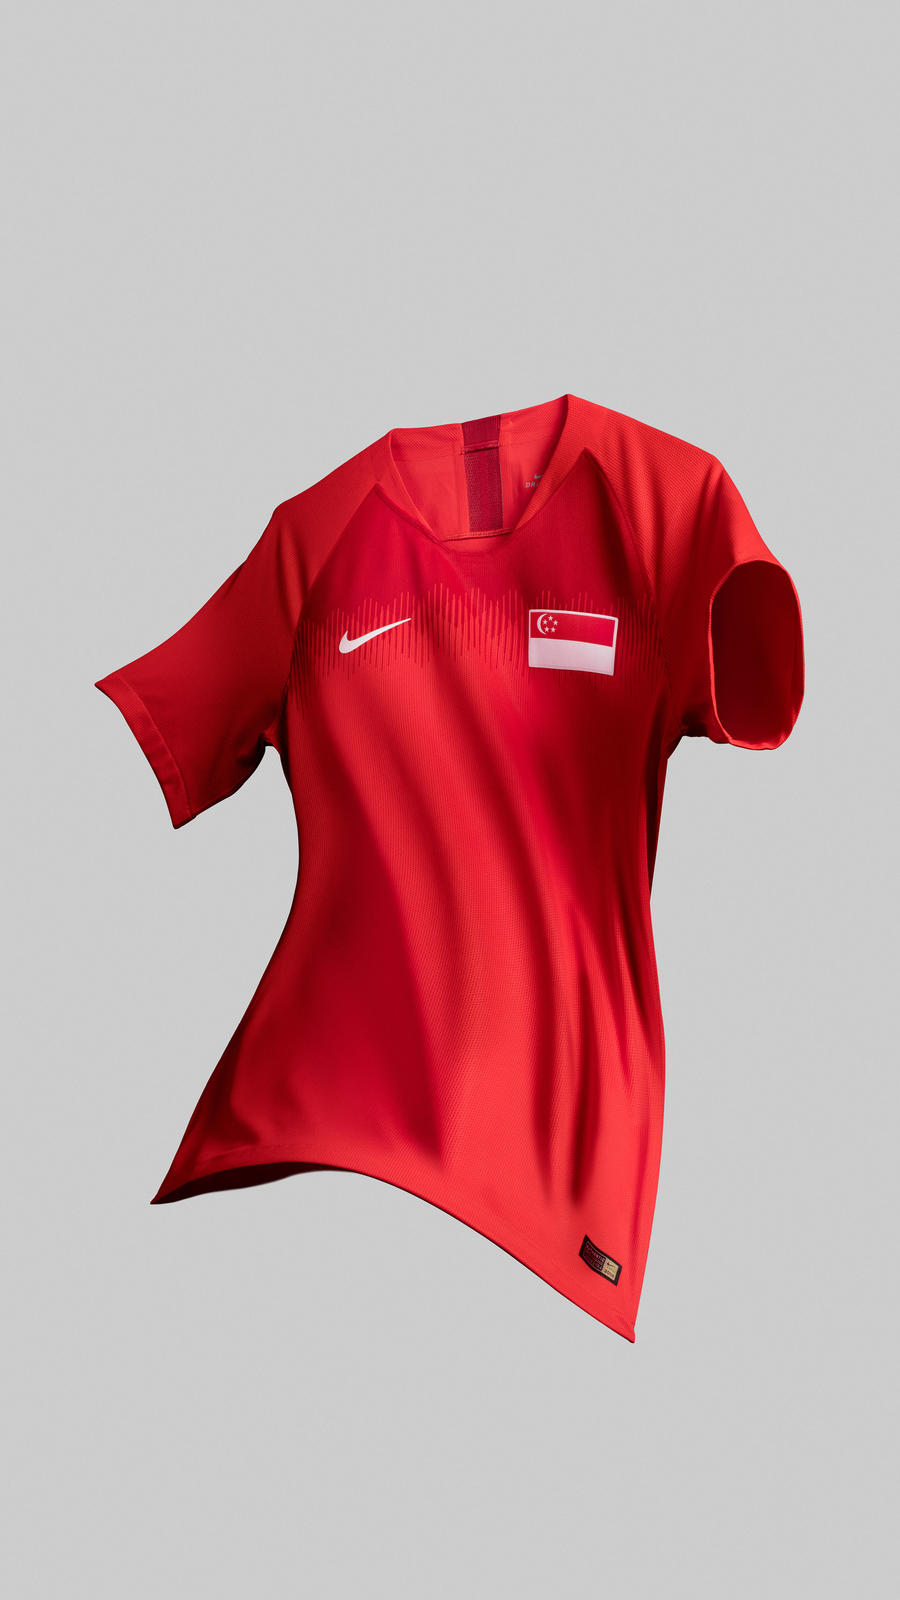 b742e871c47 3 Things Singapore s History Can Teach You About Its New National Team Kits  1